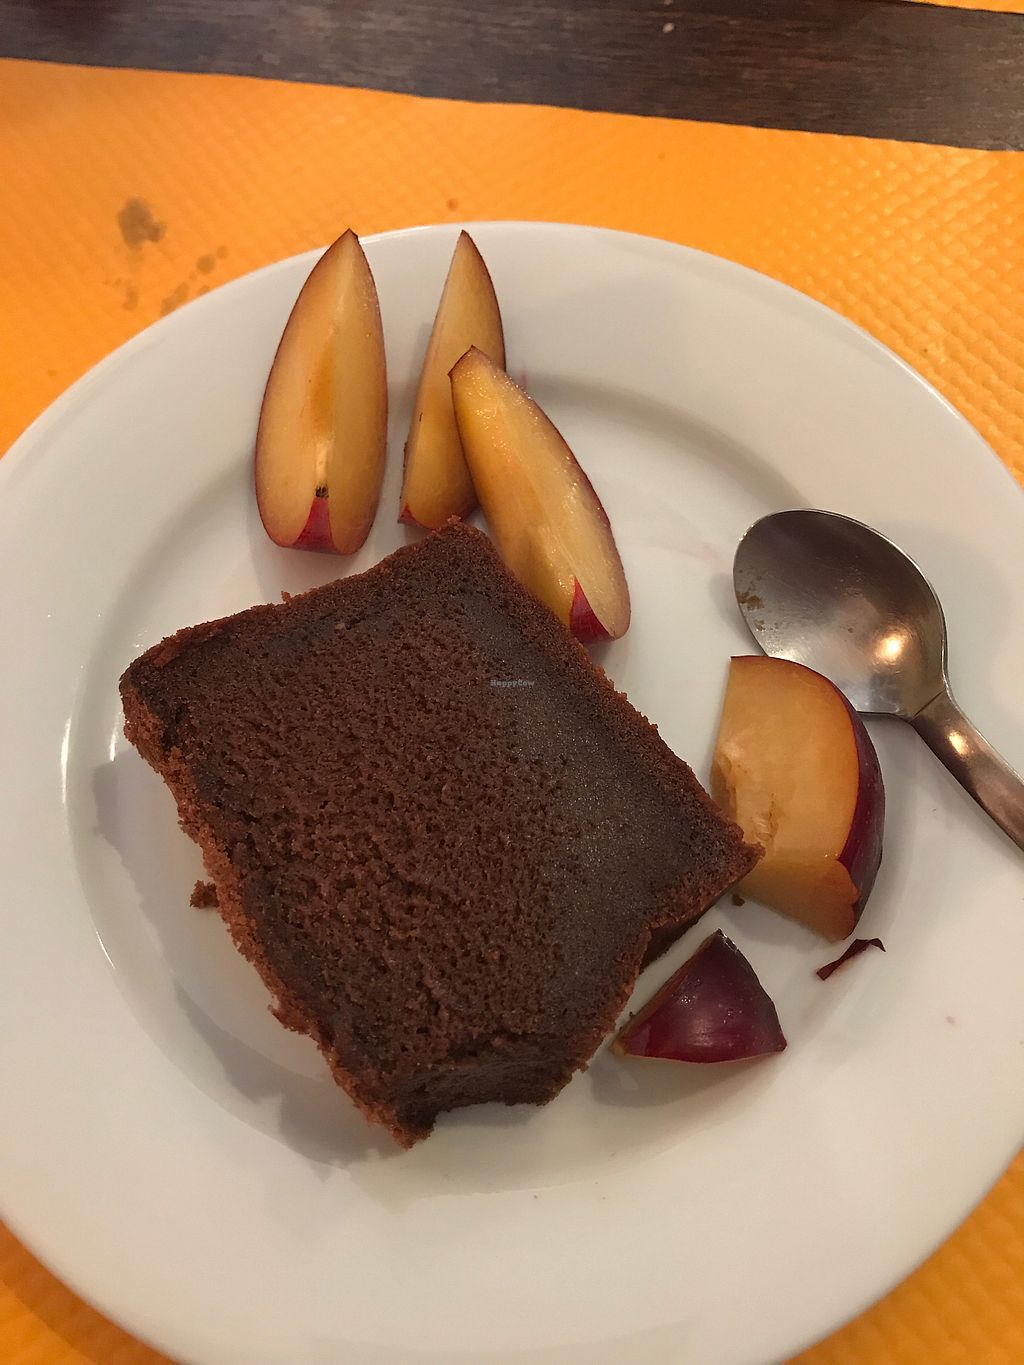 "Photo of Hope Cafe  by <a href=""/members/profile/ClareMitchell"">ClareMitchell</a> <br/>vegan chocolate and banana cake <br/> August 17, 2017  - <a href='/contact/abuse/image/70144/293768'>Report</a>"